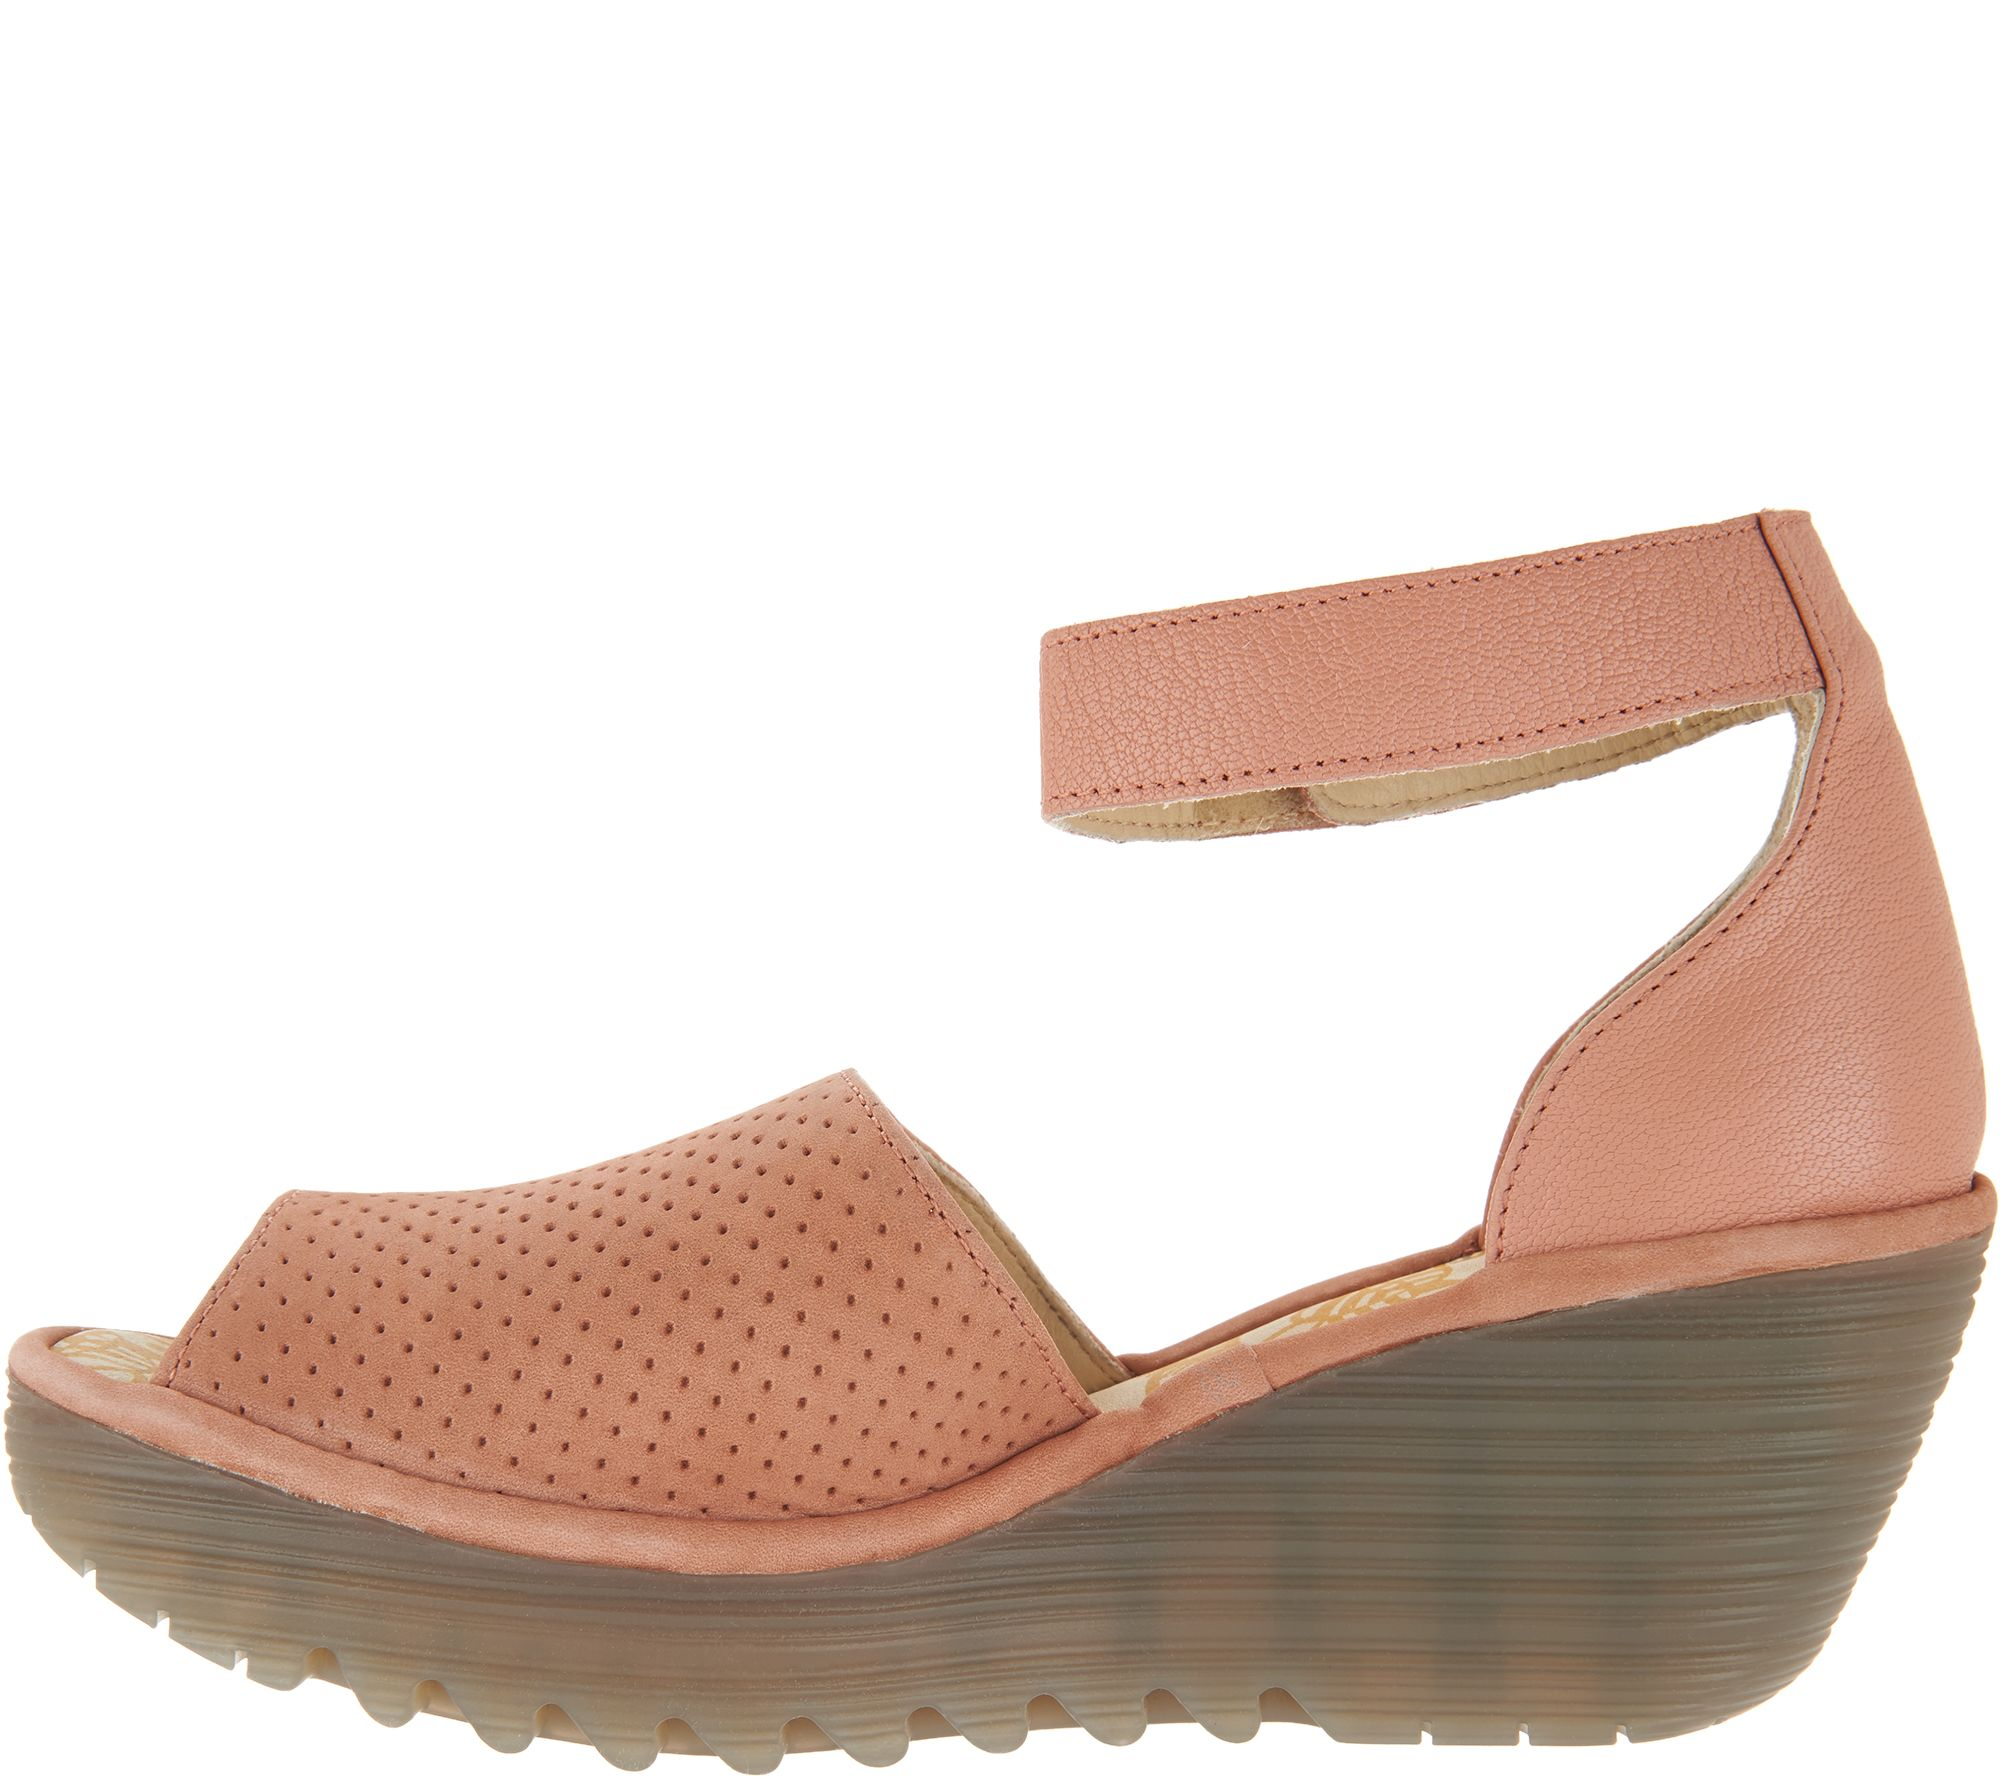 b24370405492 FLY London Perforated Leather Wedge Sandals - Yake - Page 1 — QVC.com